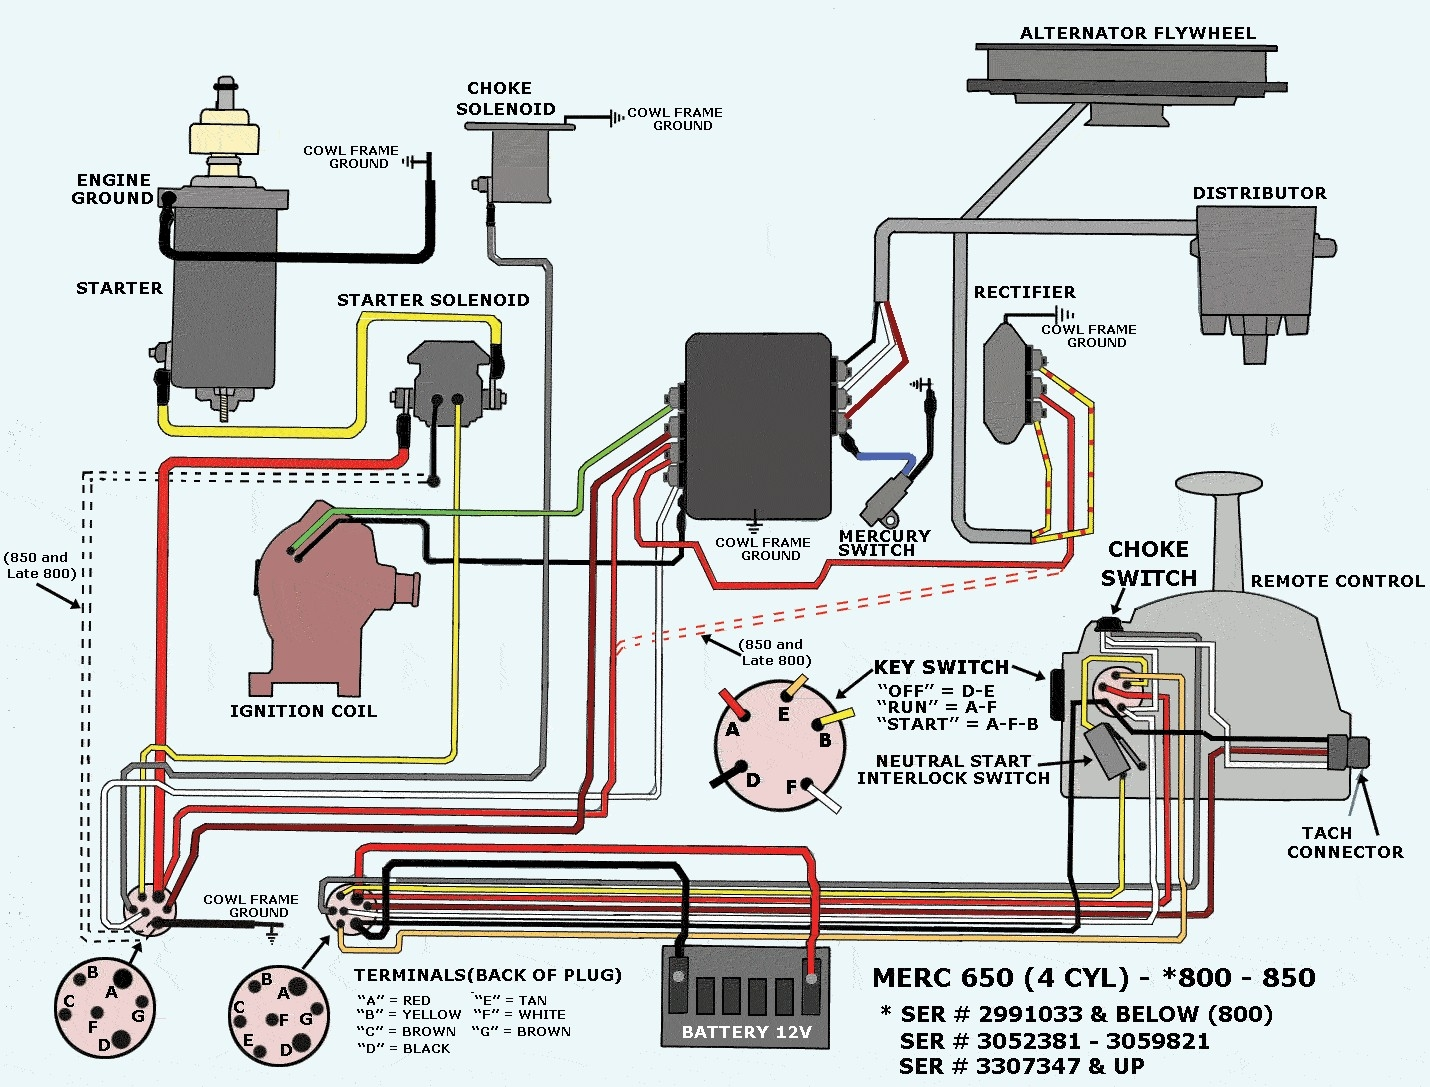 wiring diagram for mercury ignition switch mercury outboard wiring diagram ignition switch | free ... #6